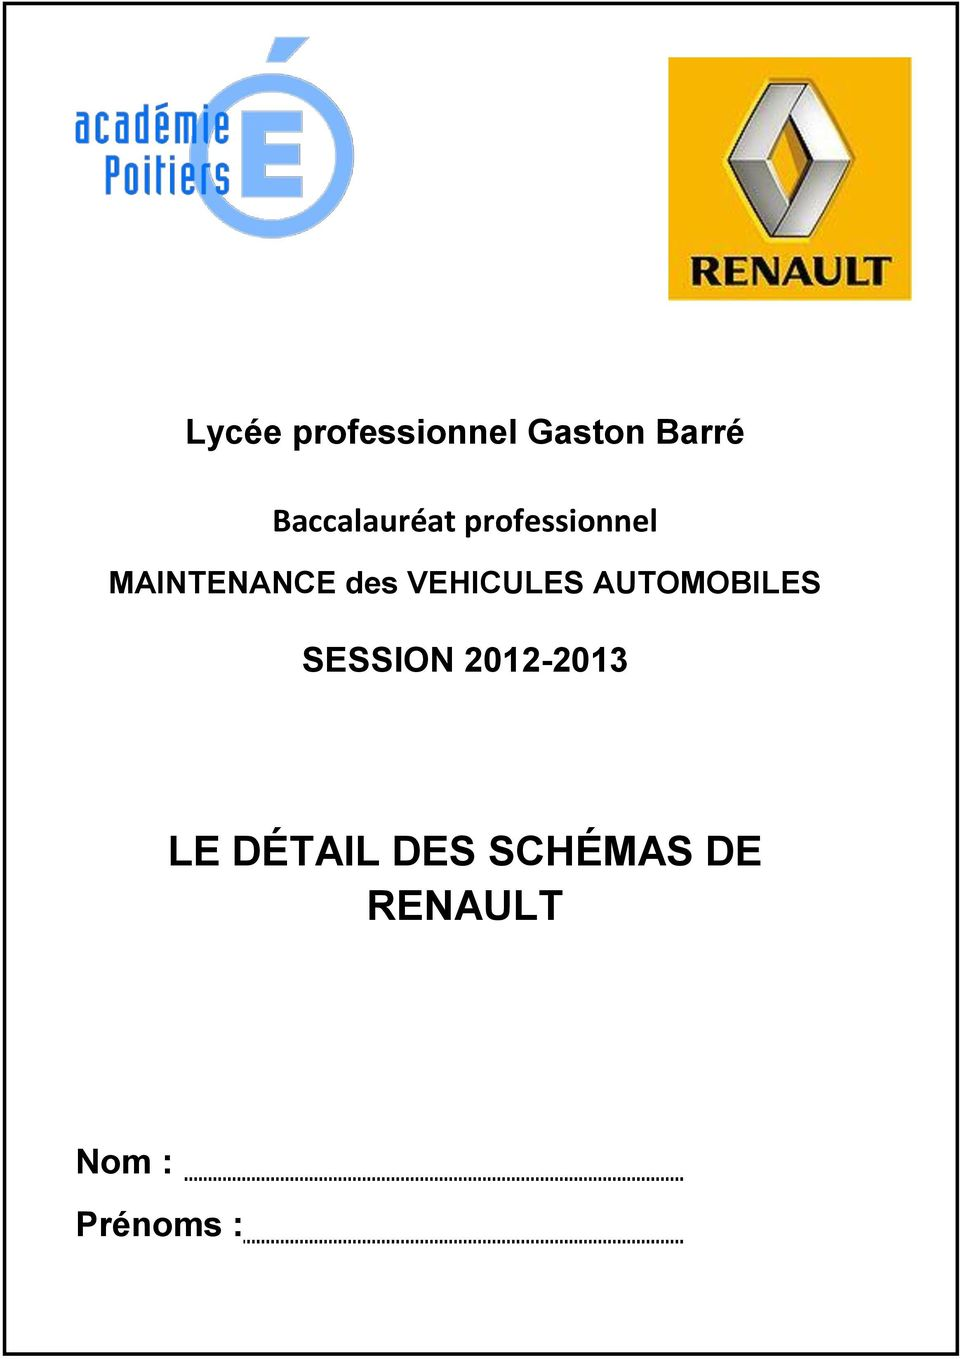 des VEHICULES AUTOMOBILES SESSION